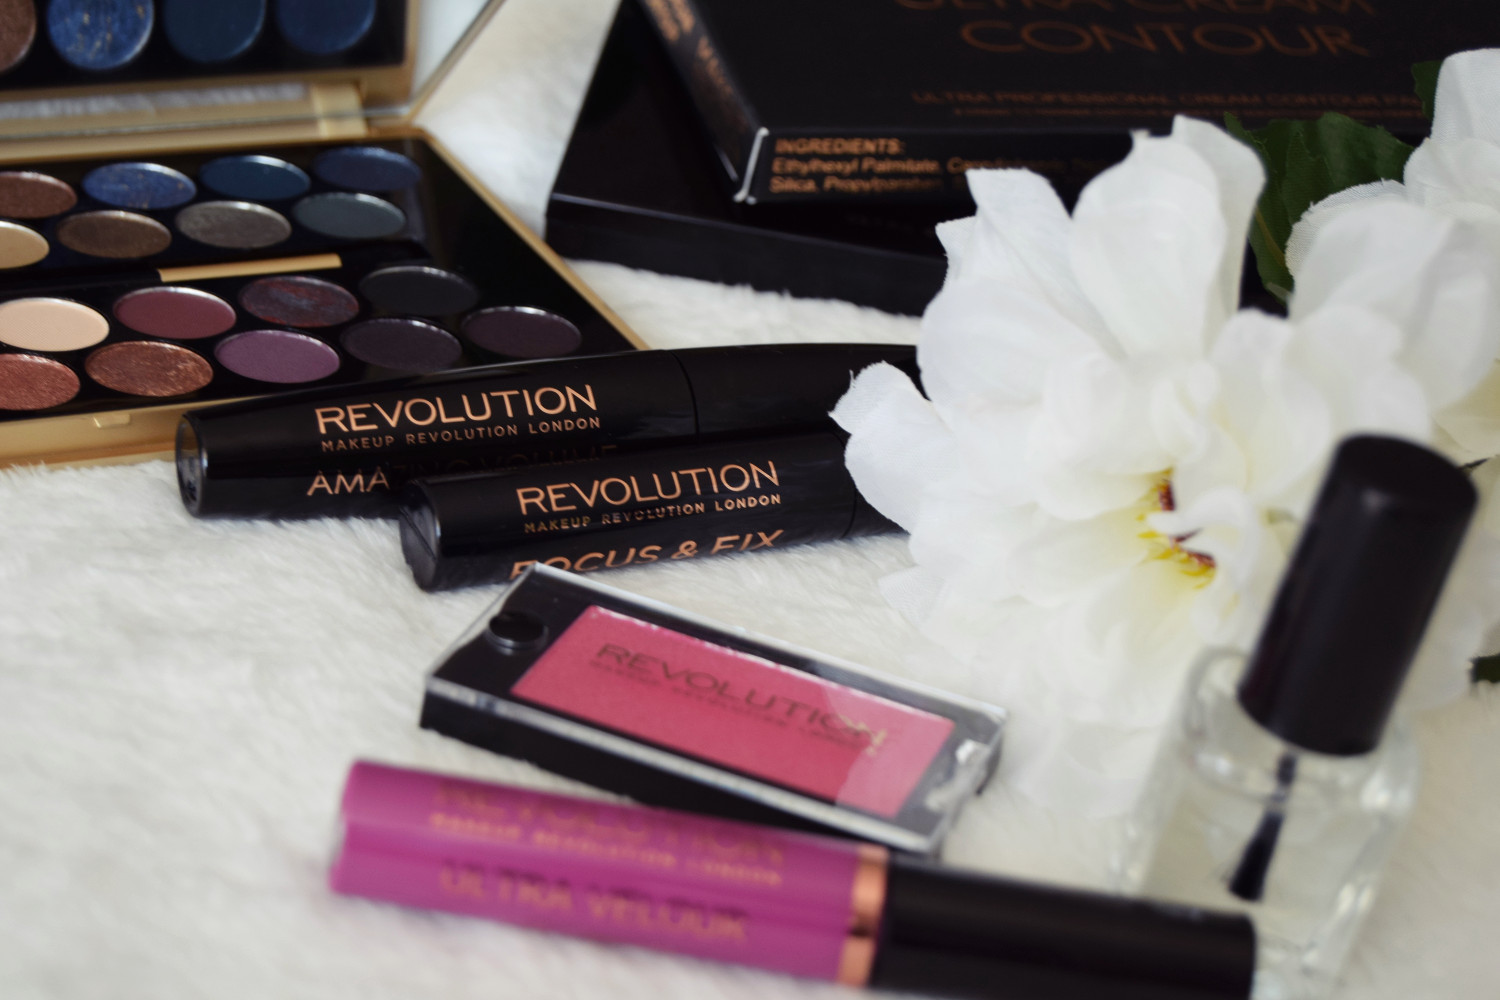 Makeup_Revolution_London_haul_review_Zalabell_4